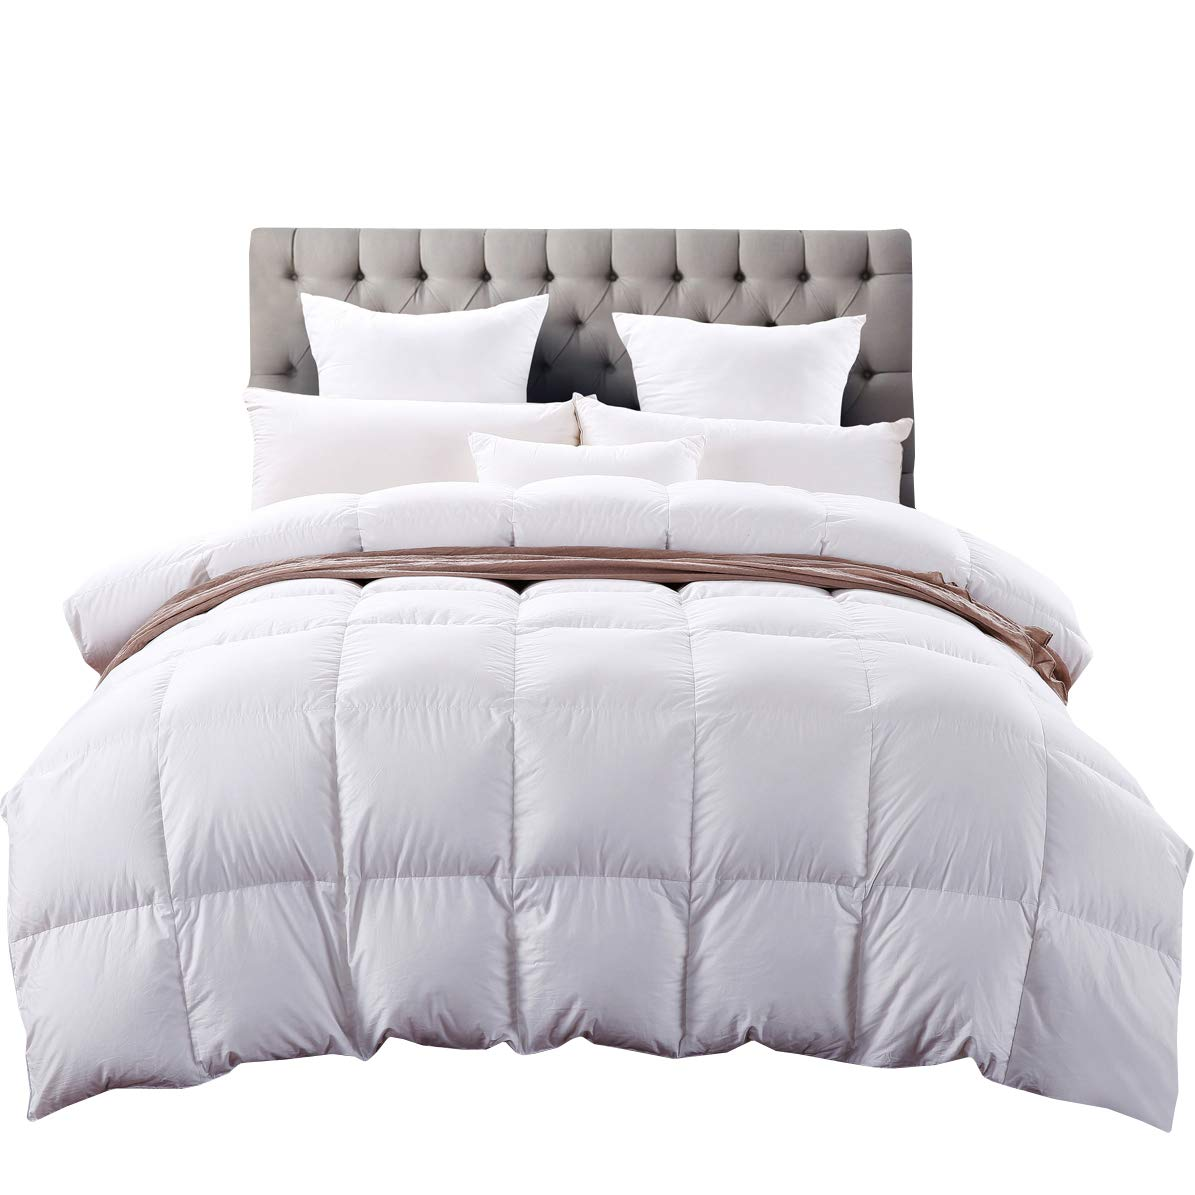 C&W Luxurious King/California King Size Siberian Goose Down Comforter,Heavywarmth Winter,Down Comforter King Size, 1200 TC-100% Egyptian Cotton Cover,750 Fill Power,70 oz Fill Weight, White Solid BNTC